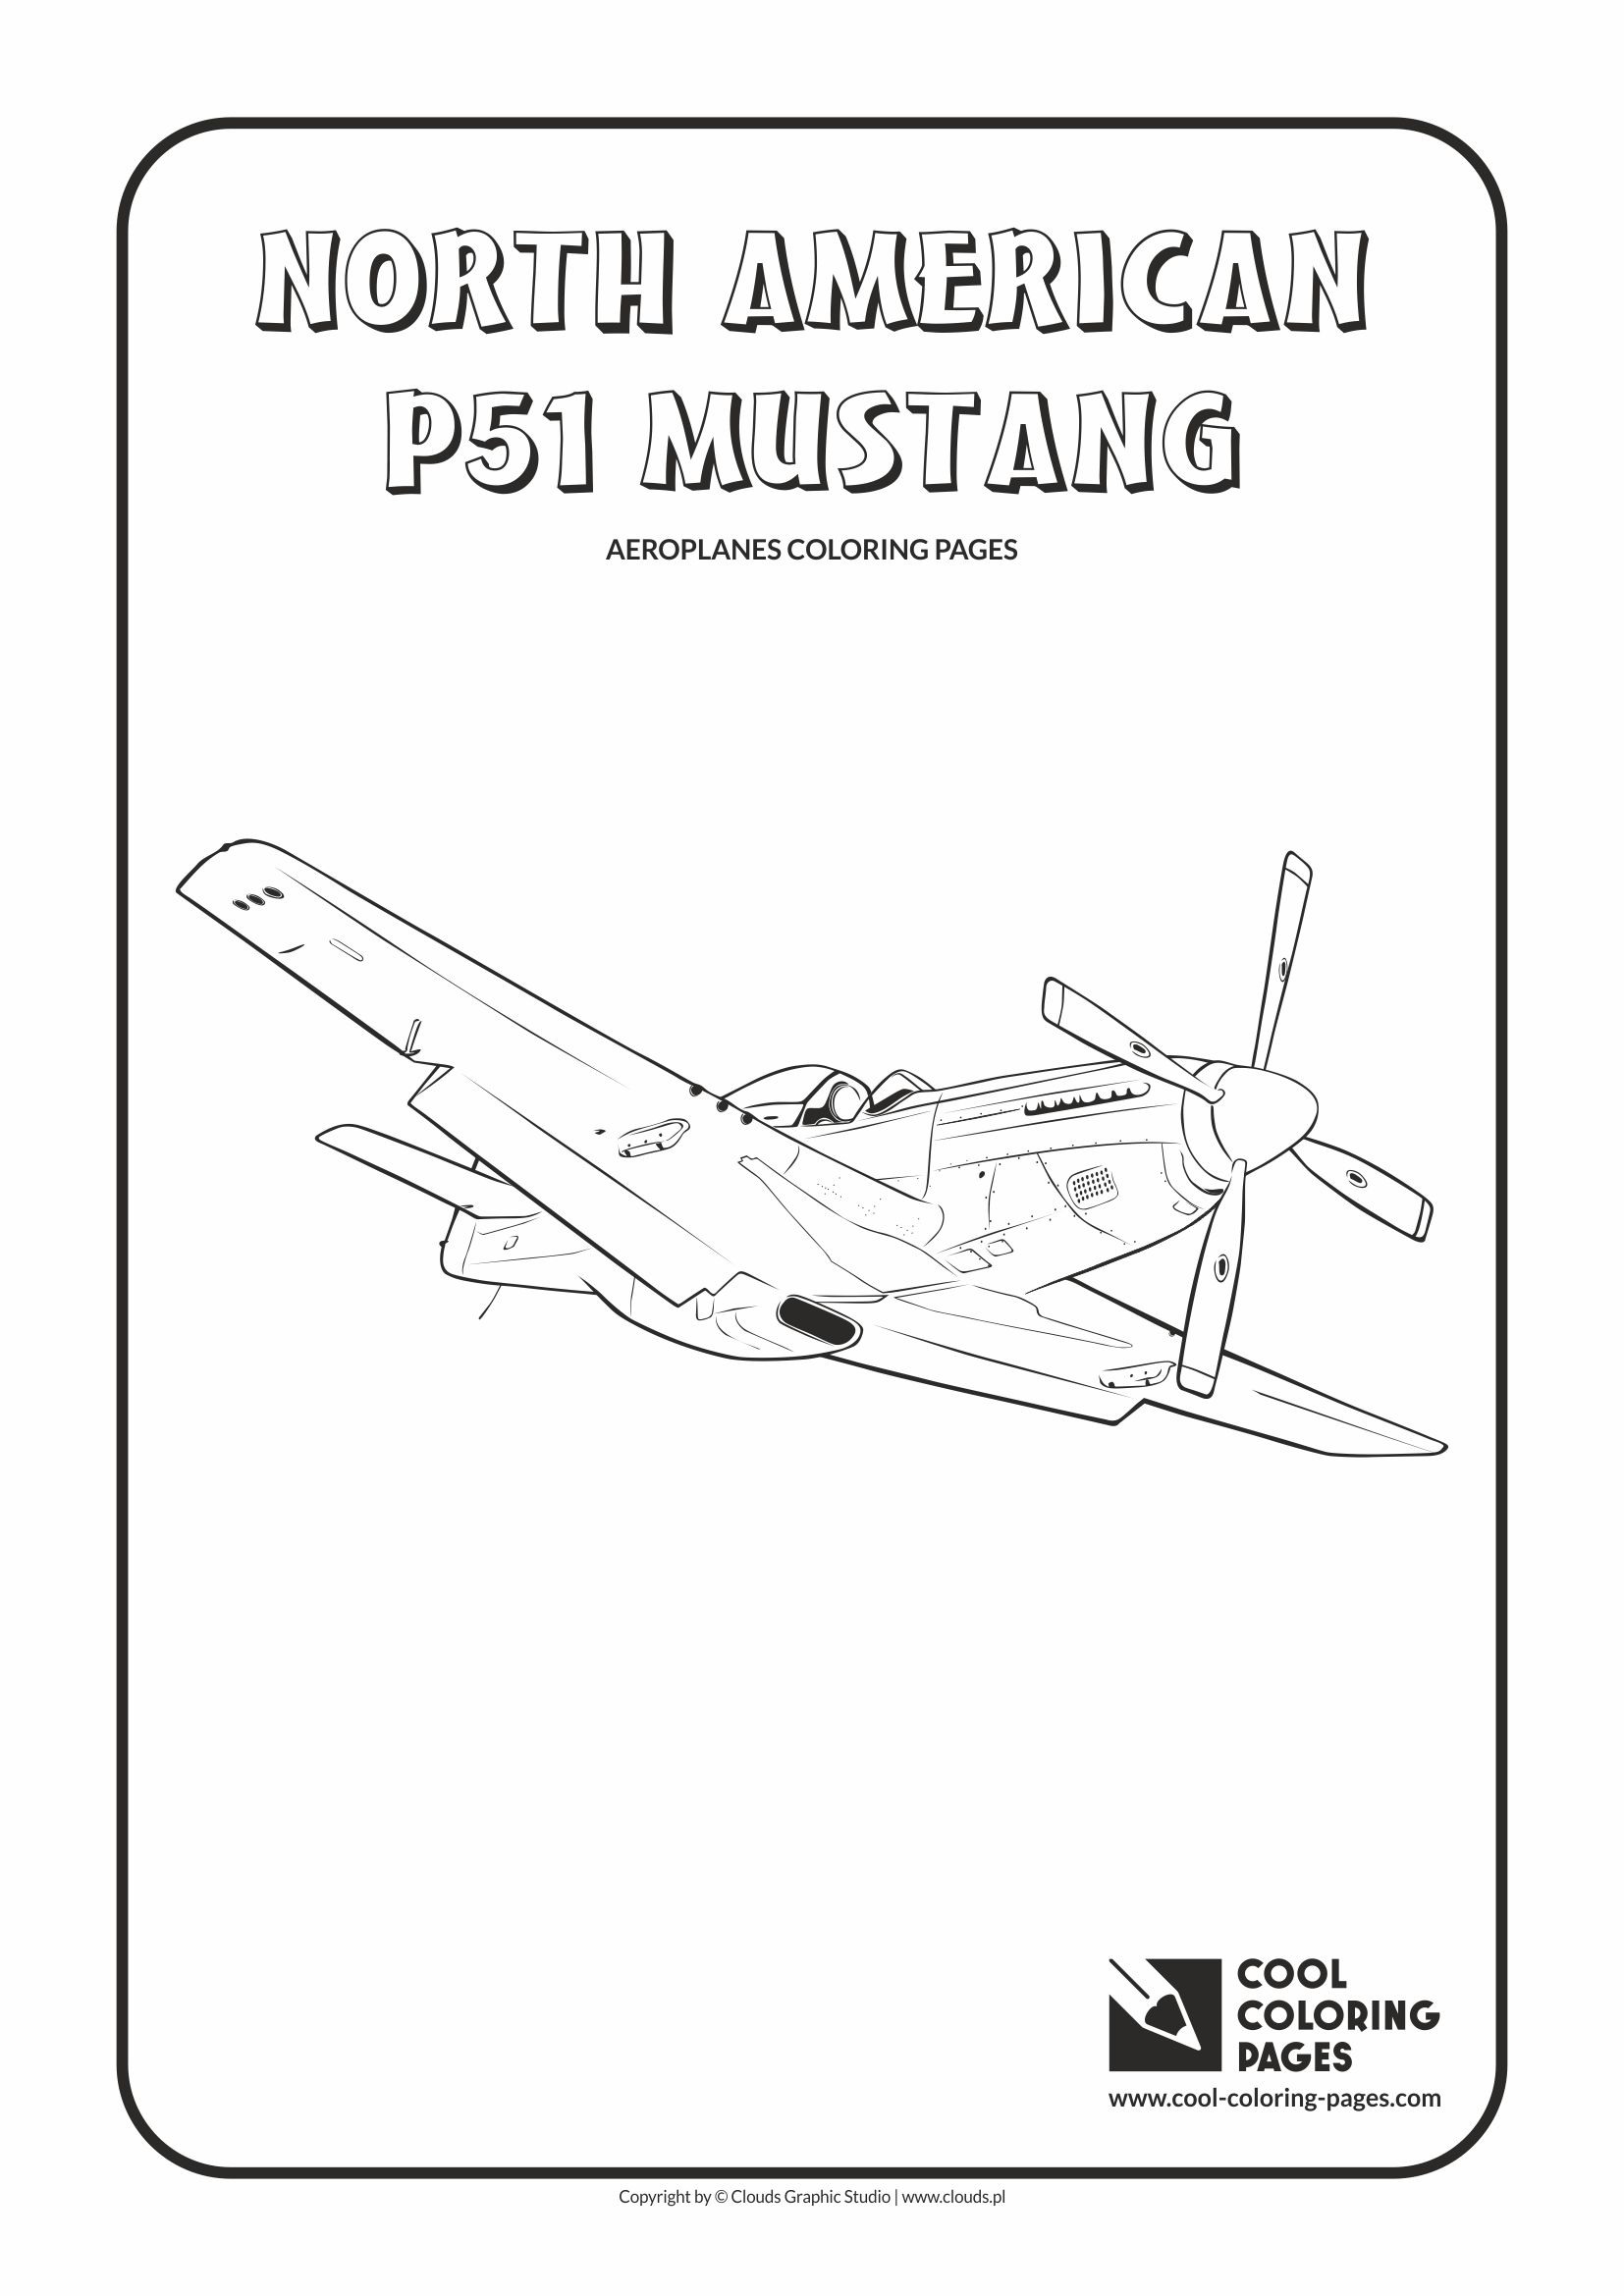 Cool Coloring Pages North American P-51 Mustang coloring